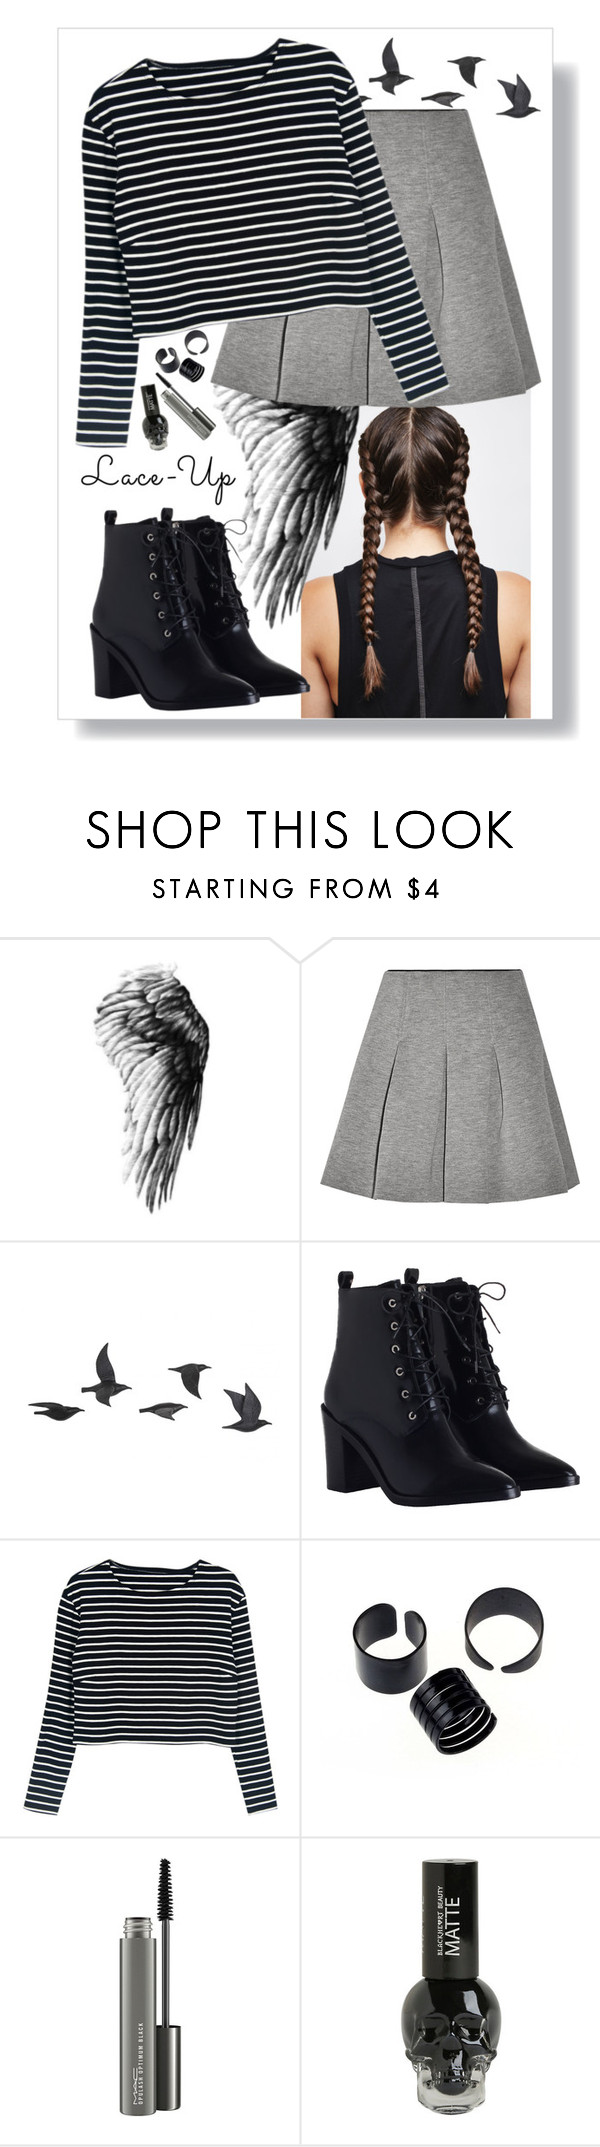 """""""Lace up boots"""" by aninhad-von ❤ liked on Polyvore featuring T By Alexander Wang, Jayson Home, Zimmermann, WithChic and MAC Cosmetics"""